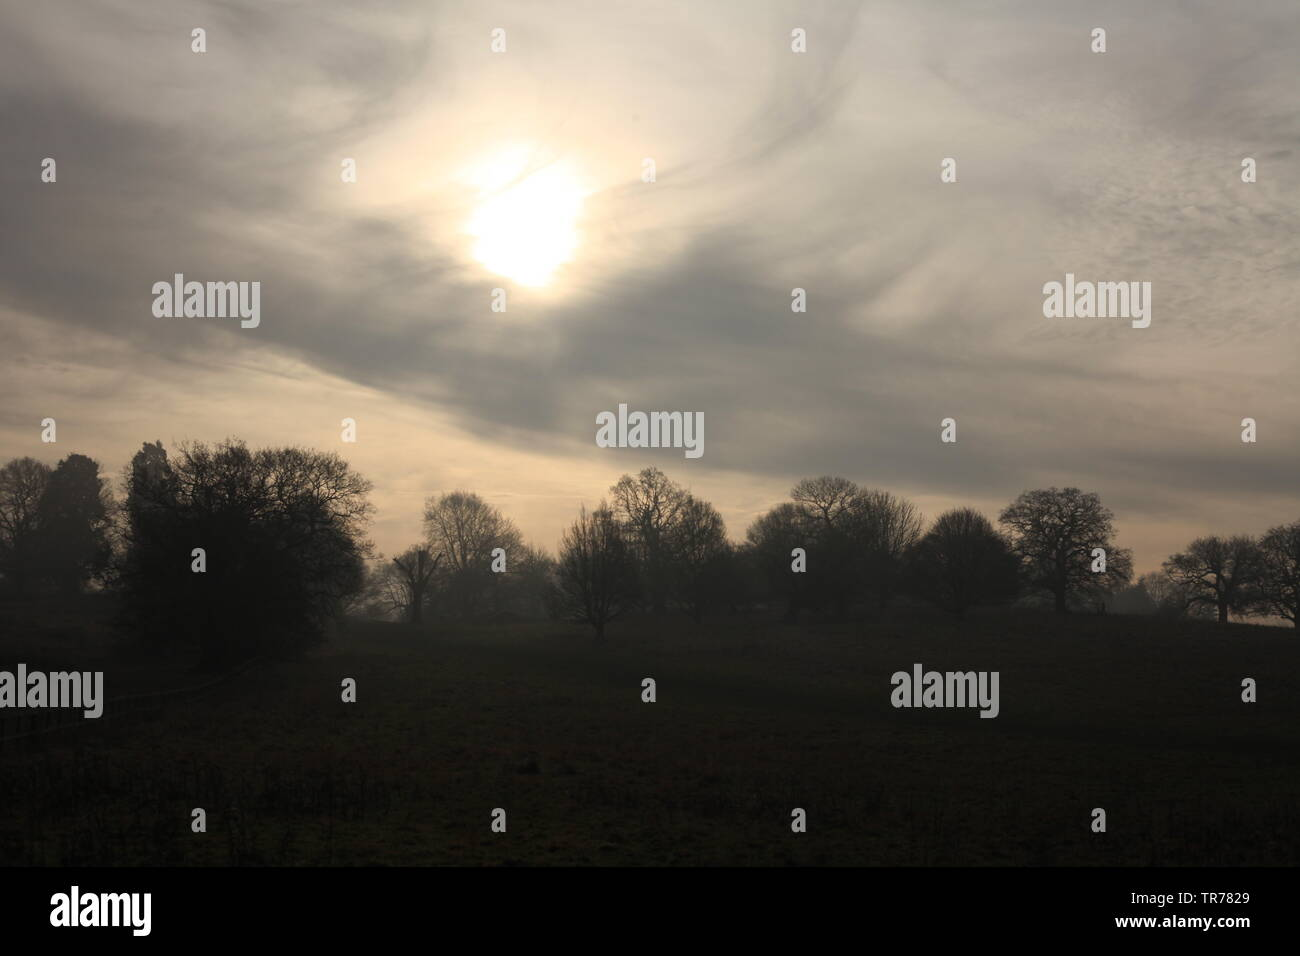 Essex Travel News & Weather - Turbulent cloud cover over woodland, Essex, Britain. Stock Photo